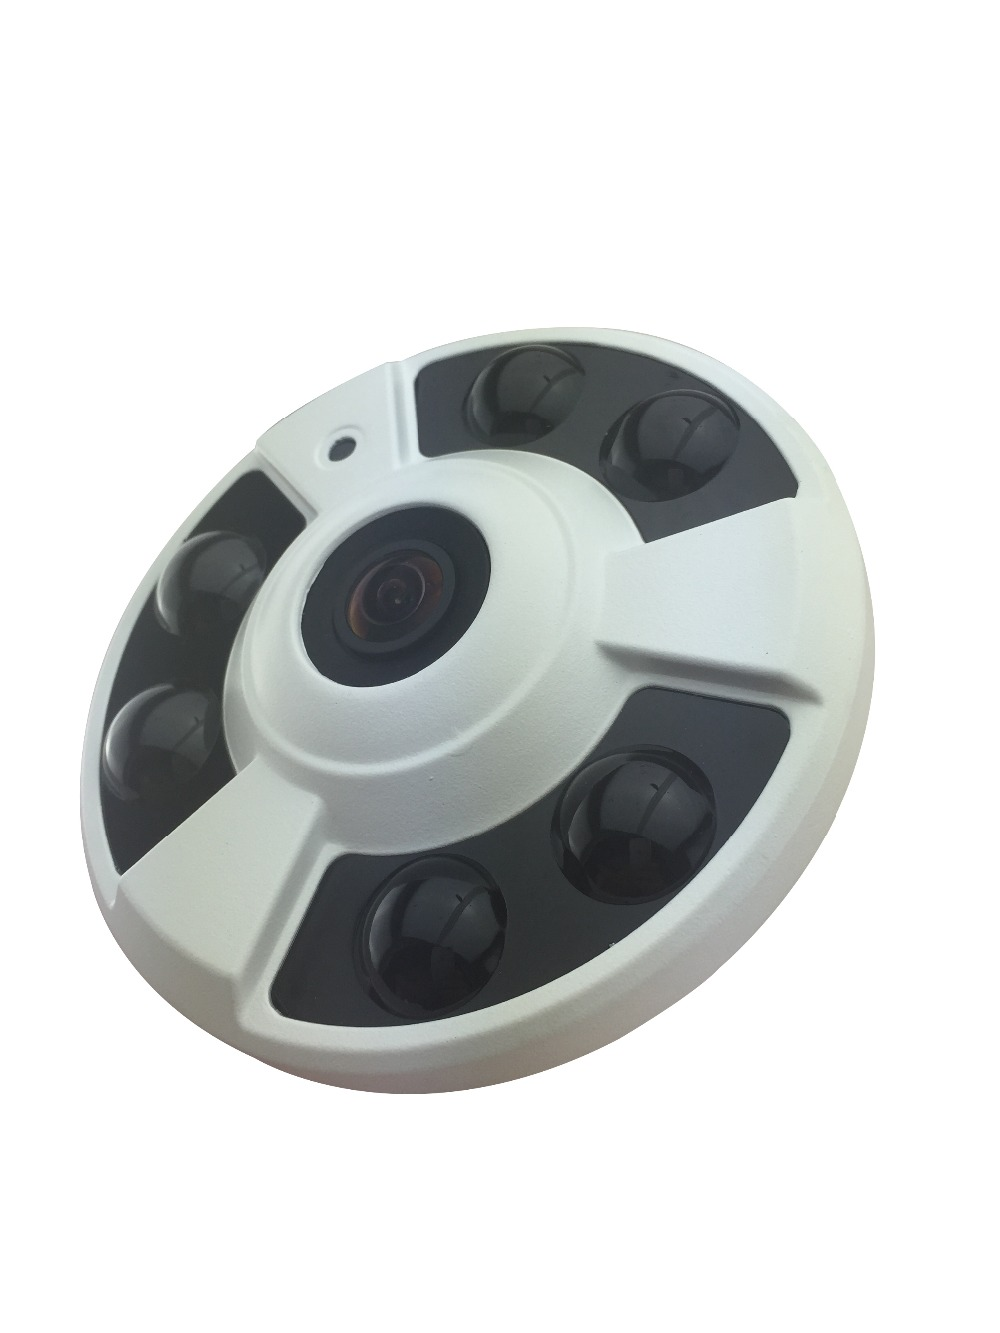 Wide-angle network IP camera HD 1080P 2.0MP indoor ceiling monitoring security CCTV Onivf, H.264 P2P cloud monitoring Audio